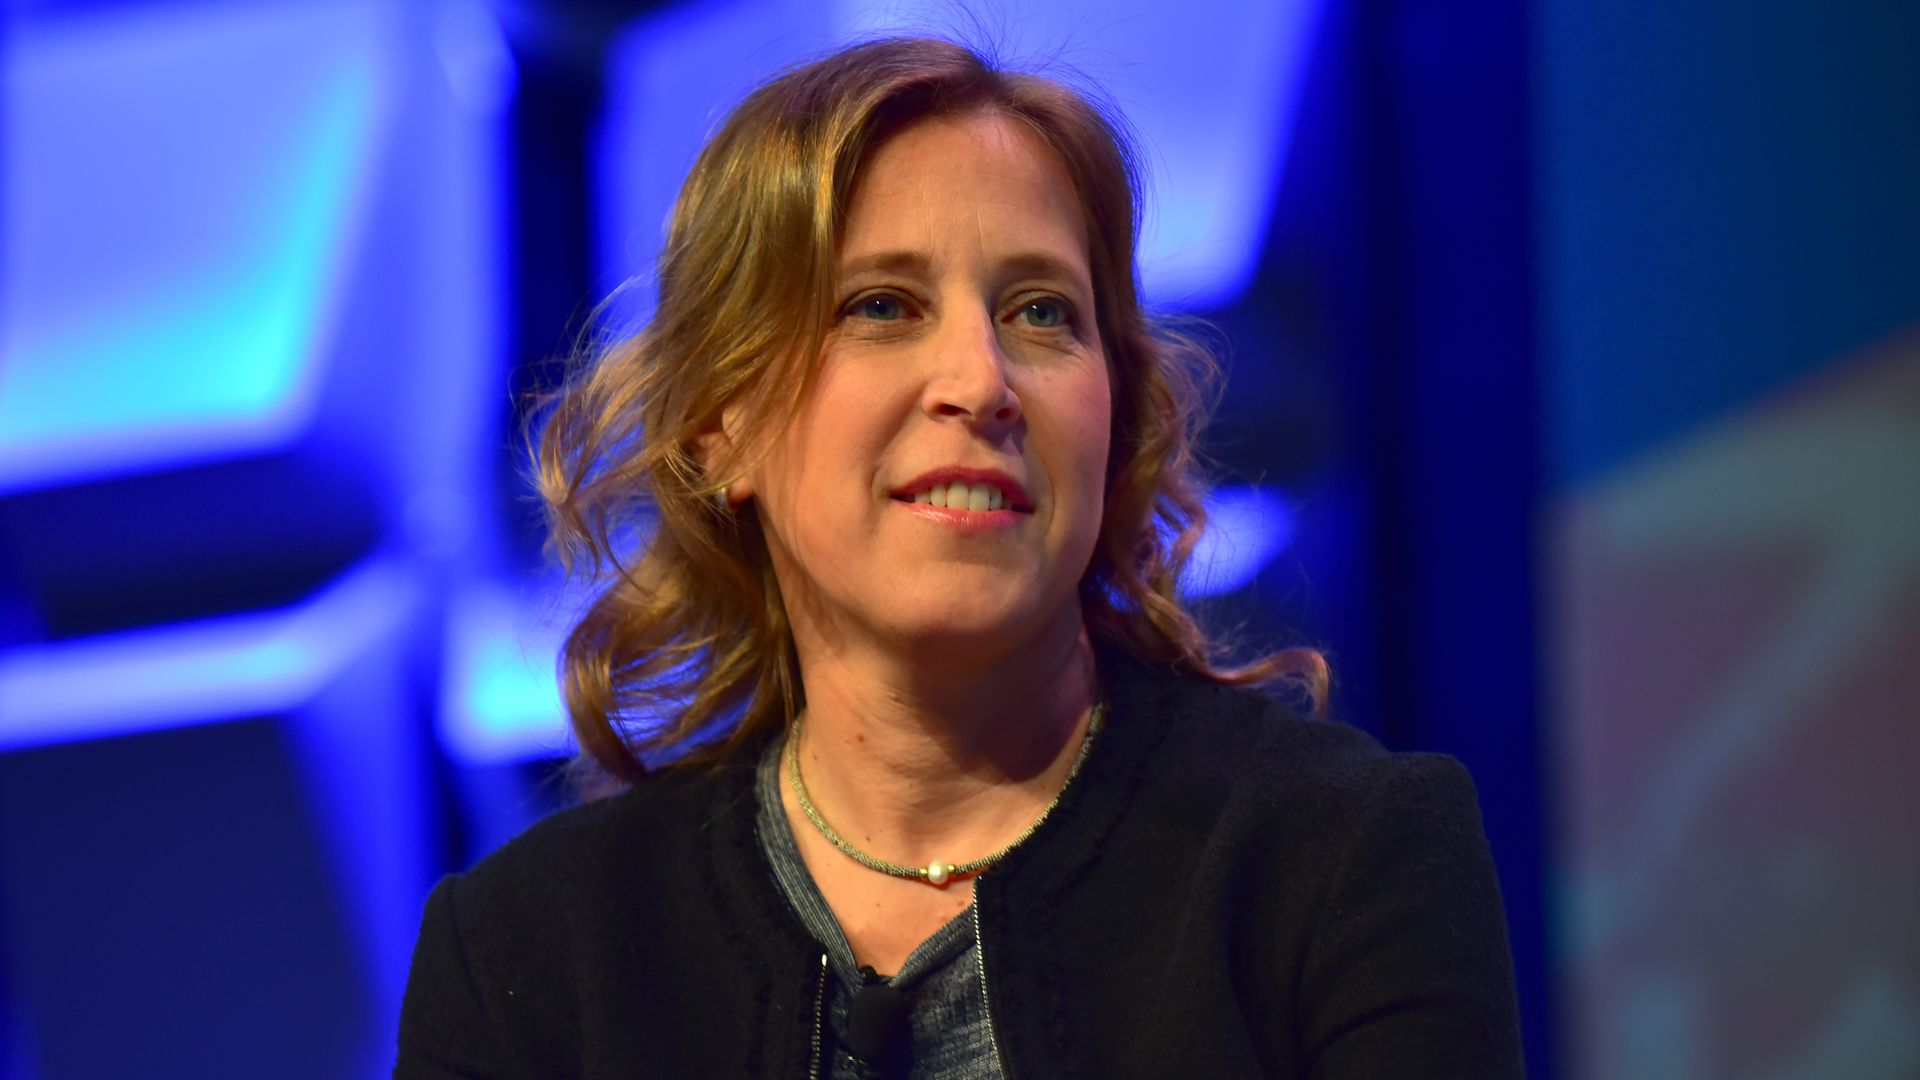 YouTube CEO Susan Wojcicki, speaking at SXSW 2018